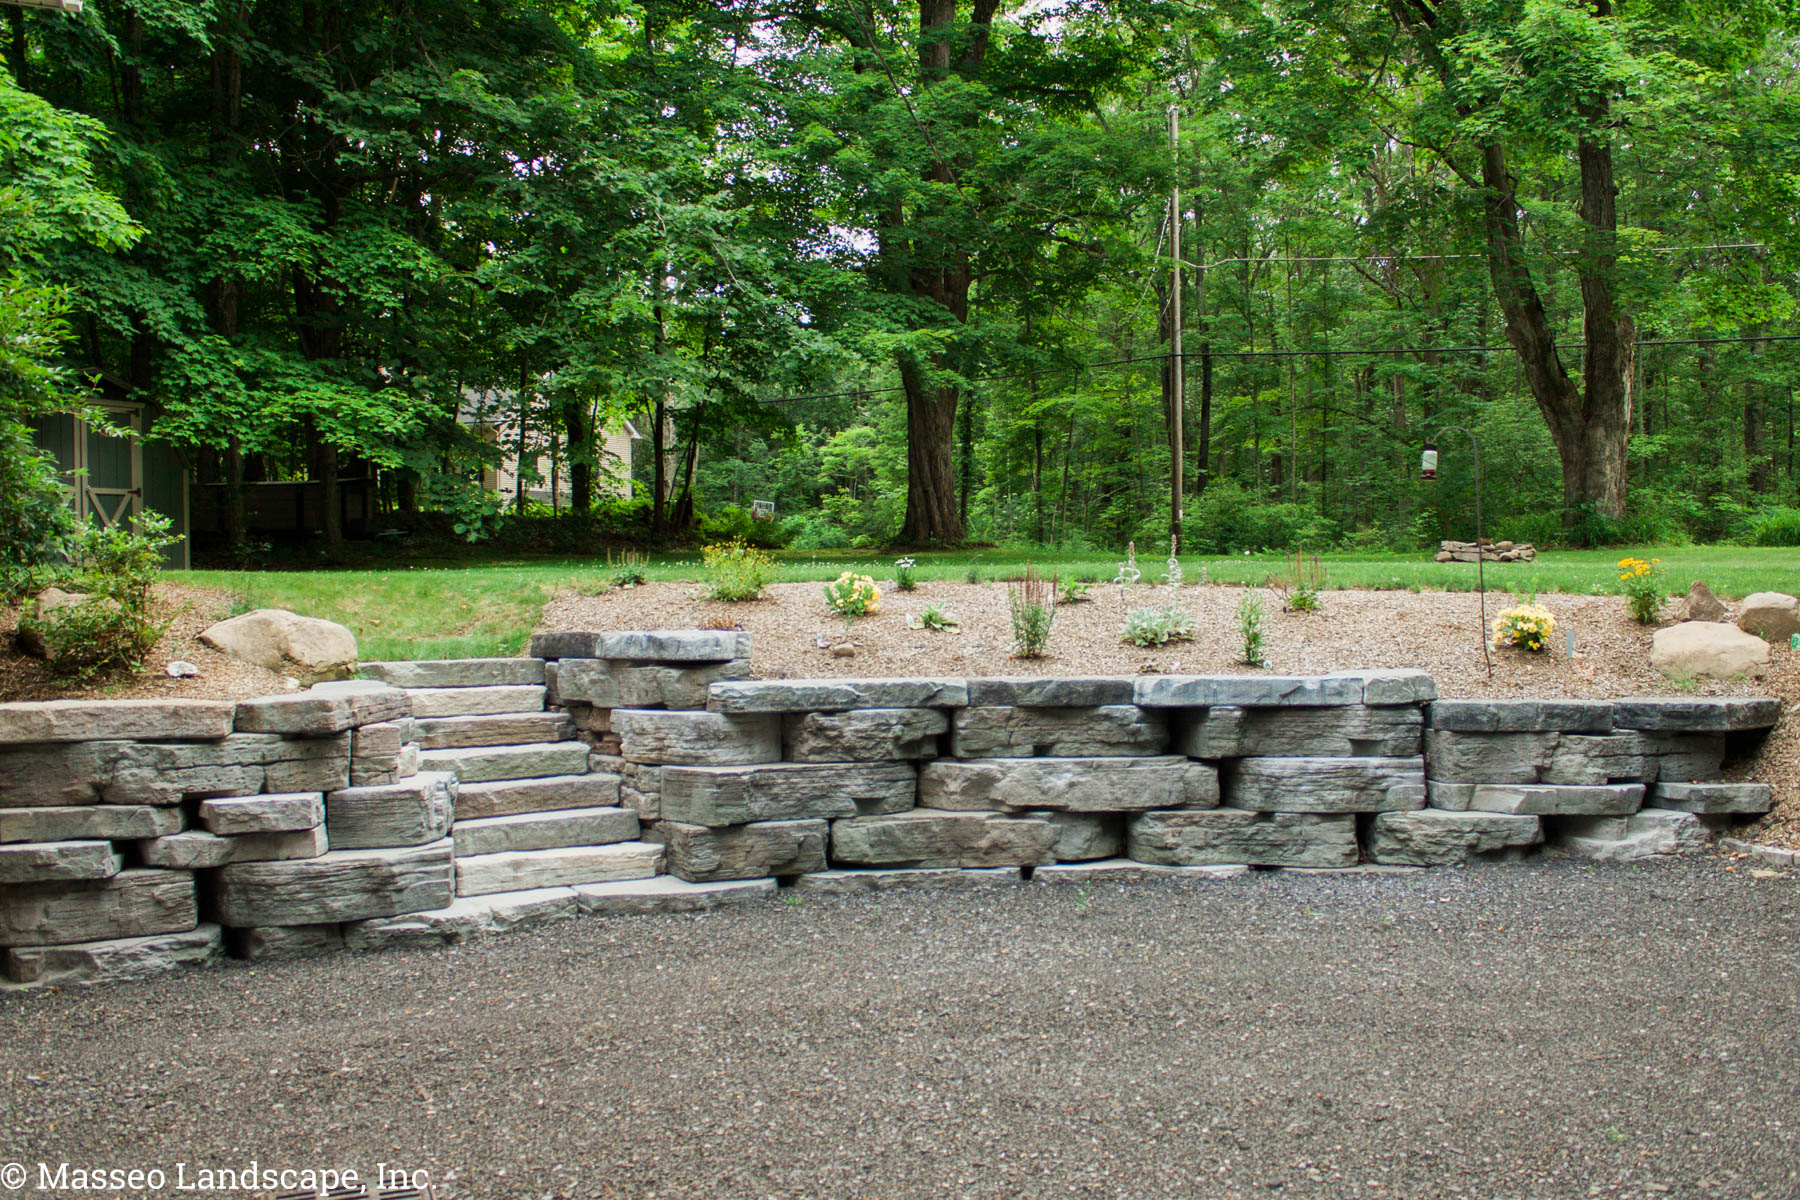 Rosetta Outcropping Retaining Wall designed by Masseo Landscape, Inc. New Paltz Landscape Contractors